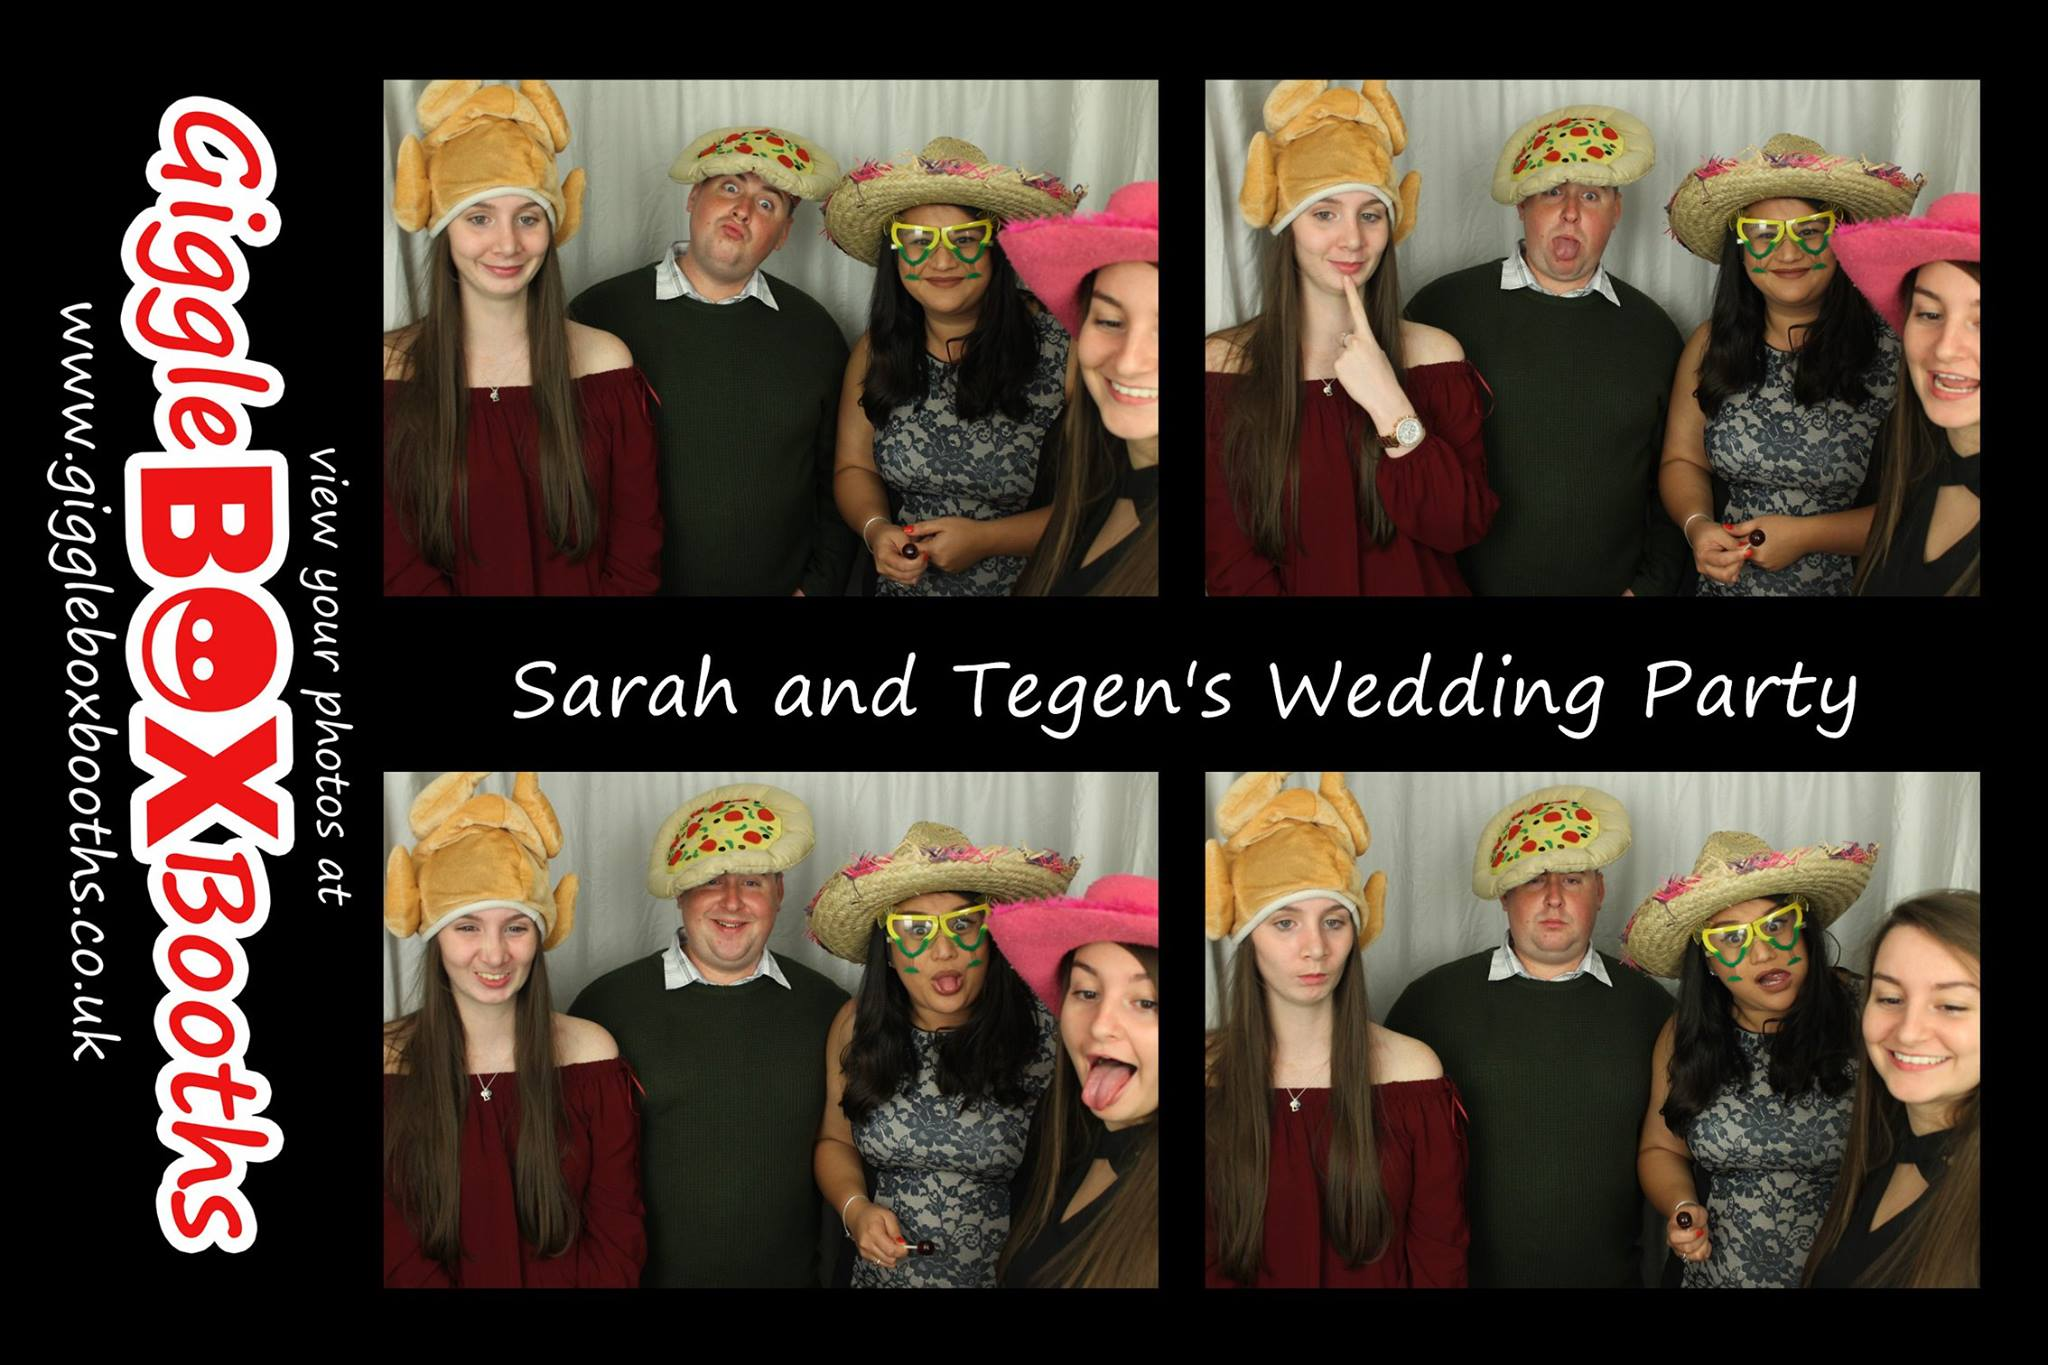 Photobooth rental in Chelmsford Essex | photo booth hire in Chelmsford